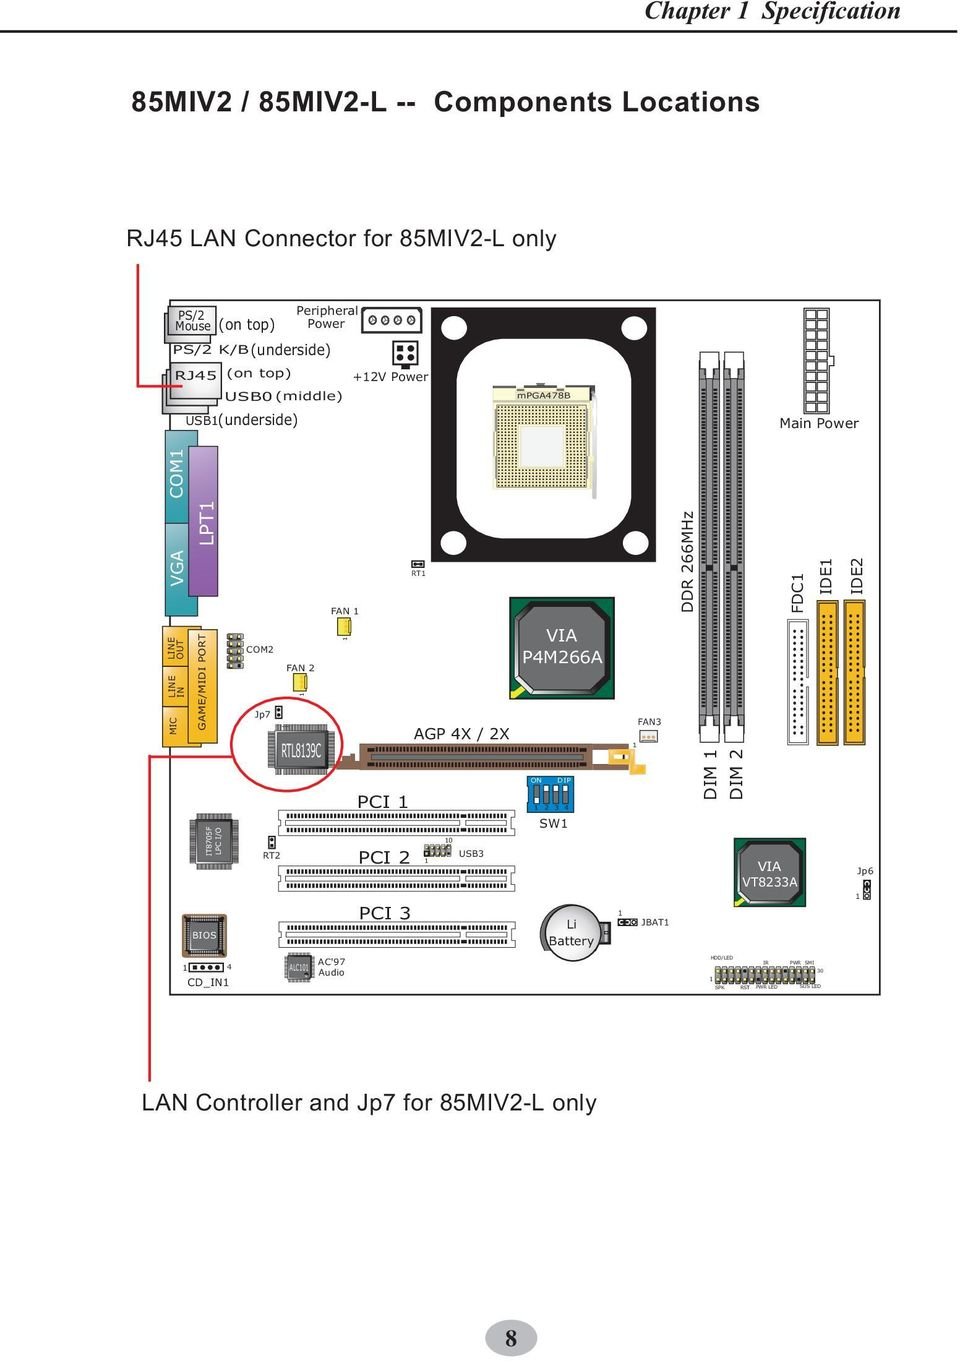 LPC I/O BIOS 4 CD_IN COM2 Jp7 RT2 FAN 2 RTL839C ALC0 FAN AC'97 Audio PCI PCI 2 PCI 3 RT AGP 4X / 2X 0 USB3 VIA P4M266A ON DIP 2 3 4 SW Li Battery